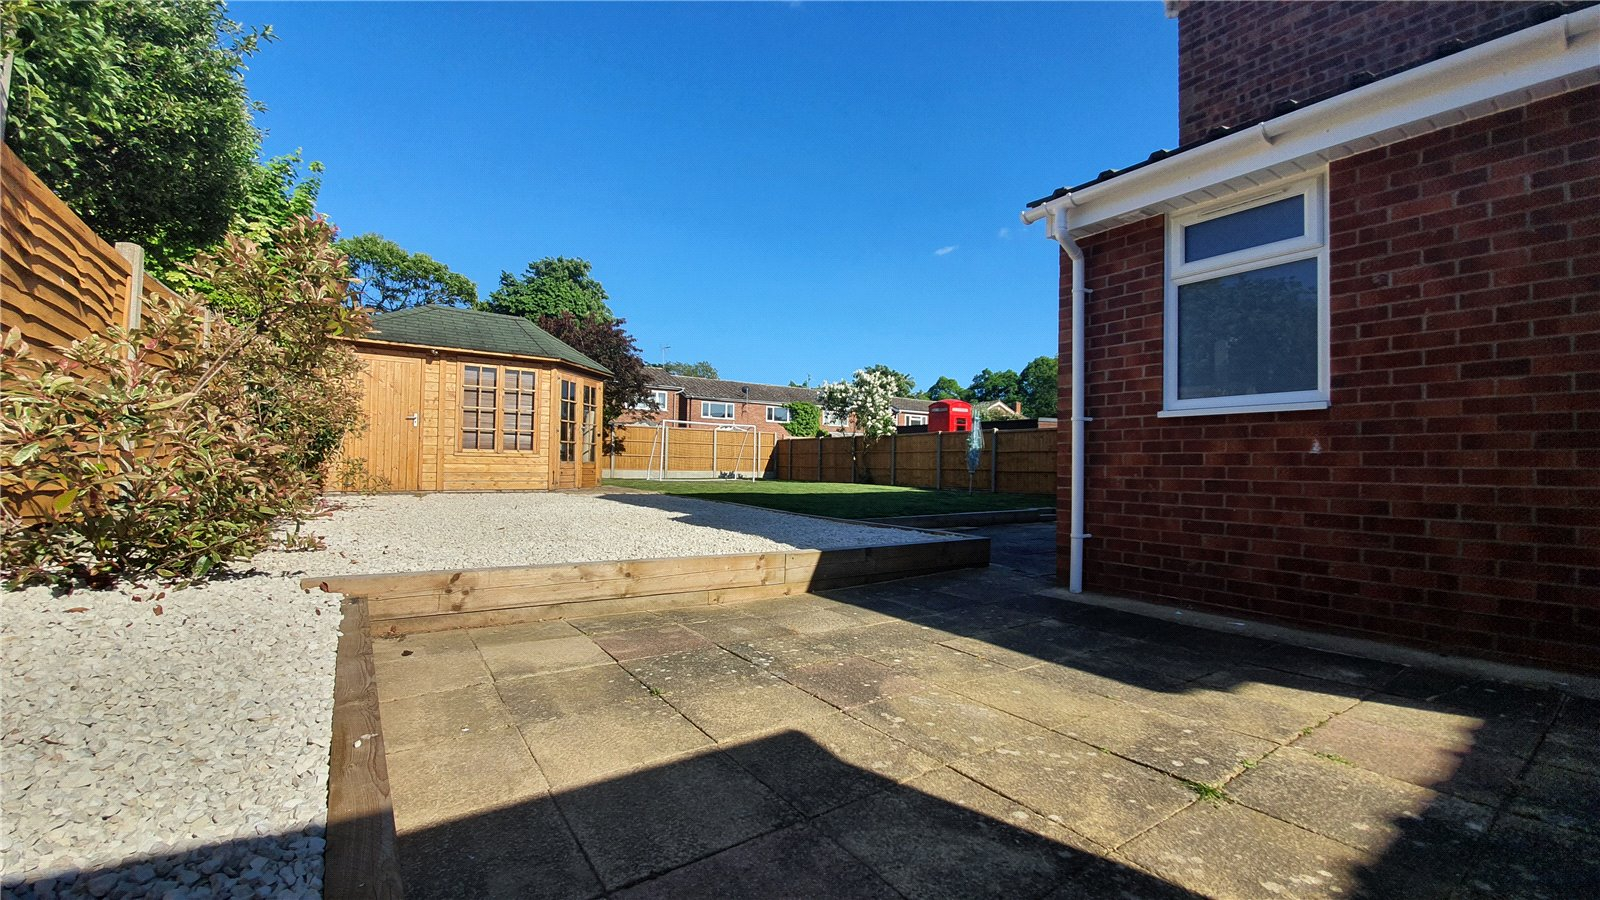 3 bed house for sale in The Sycamores, Little Paxton  - Property Image 8